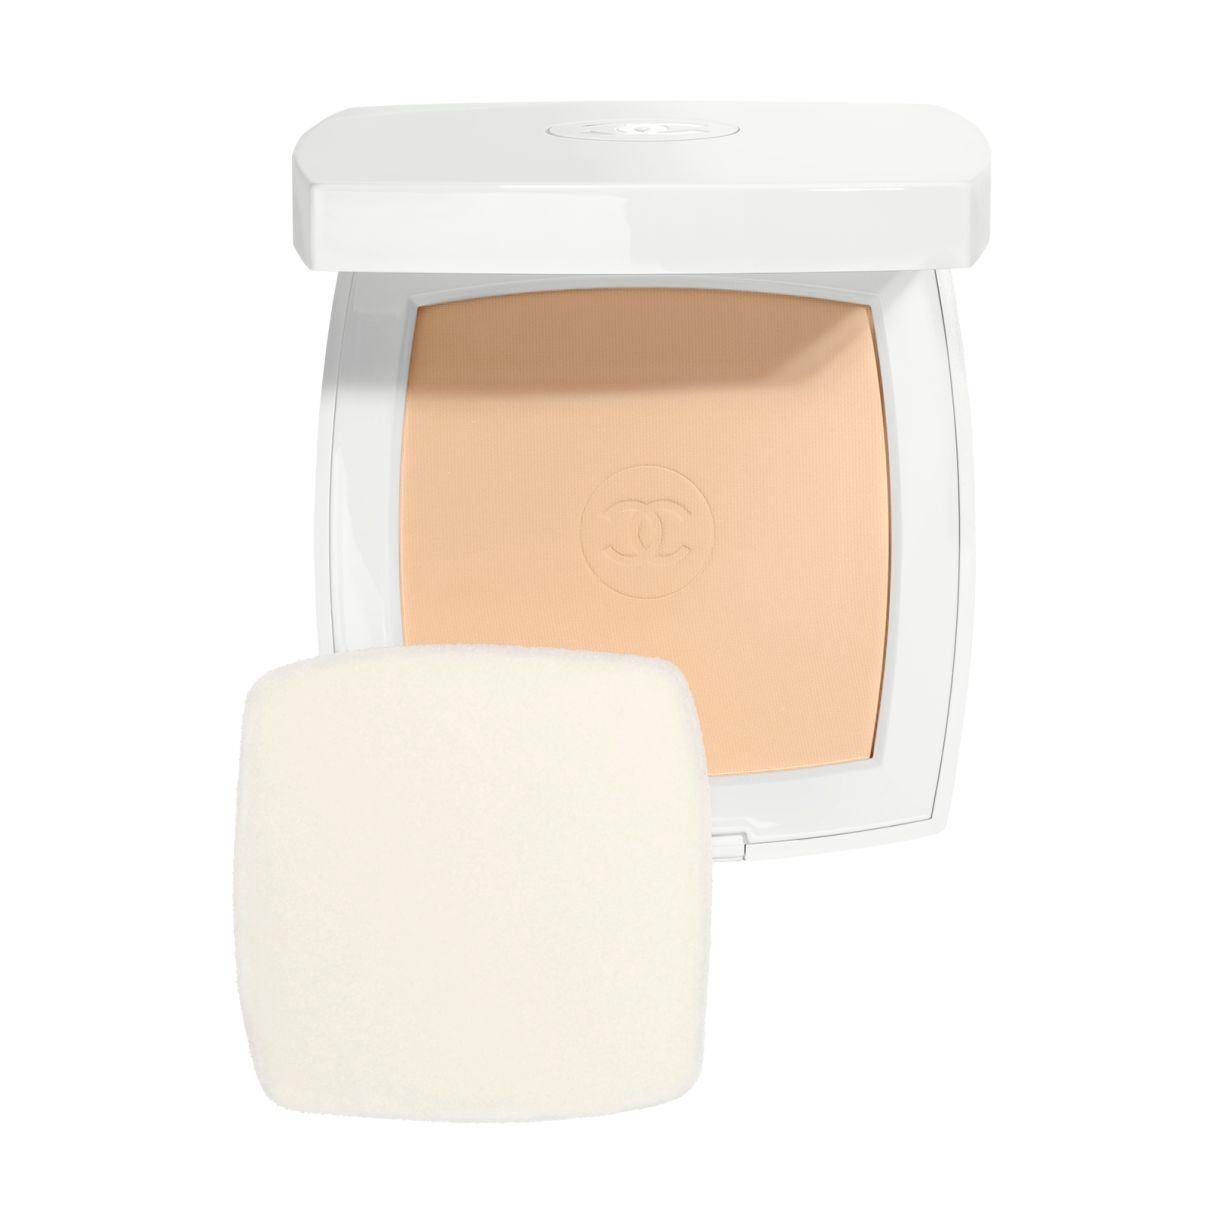 LE BLANC BRIGHTENING COMPACT FOUNDATION LONG LASTING RADIANCE-THERMAL COMFORT